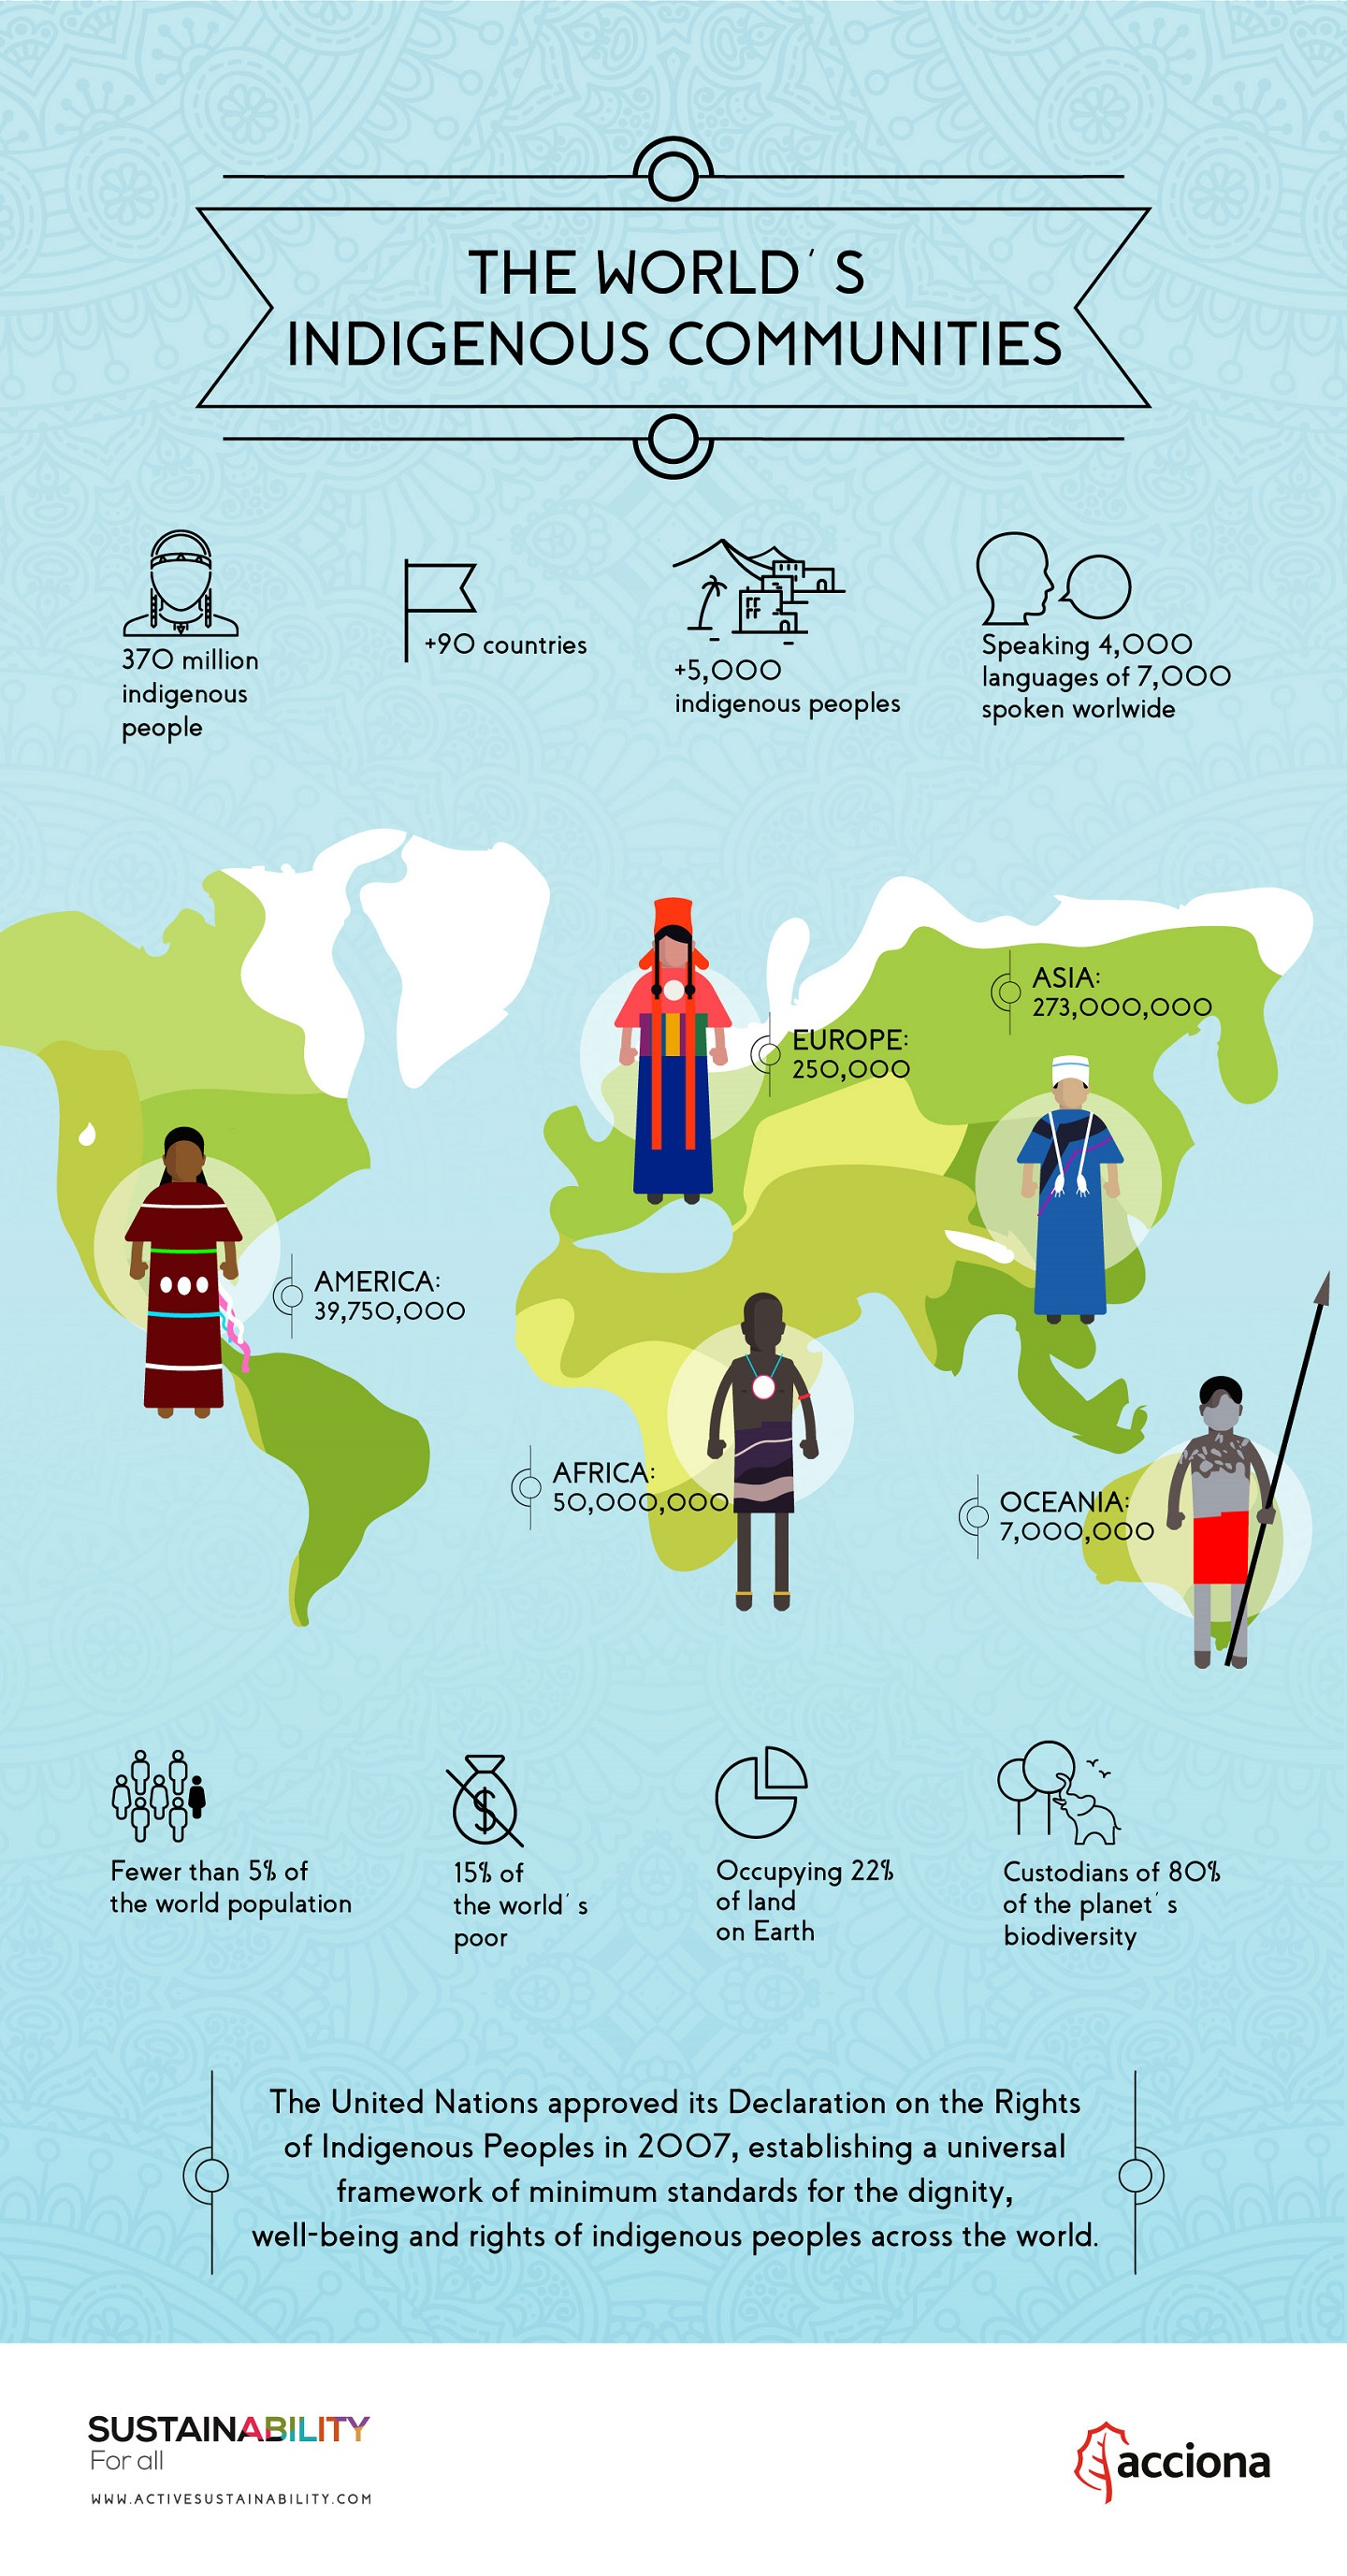 The world's indigenous communities